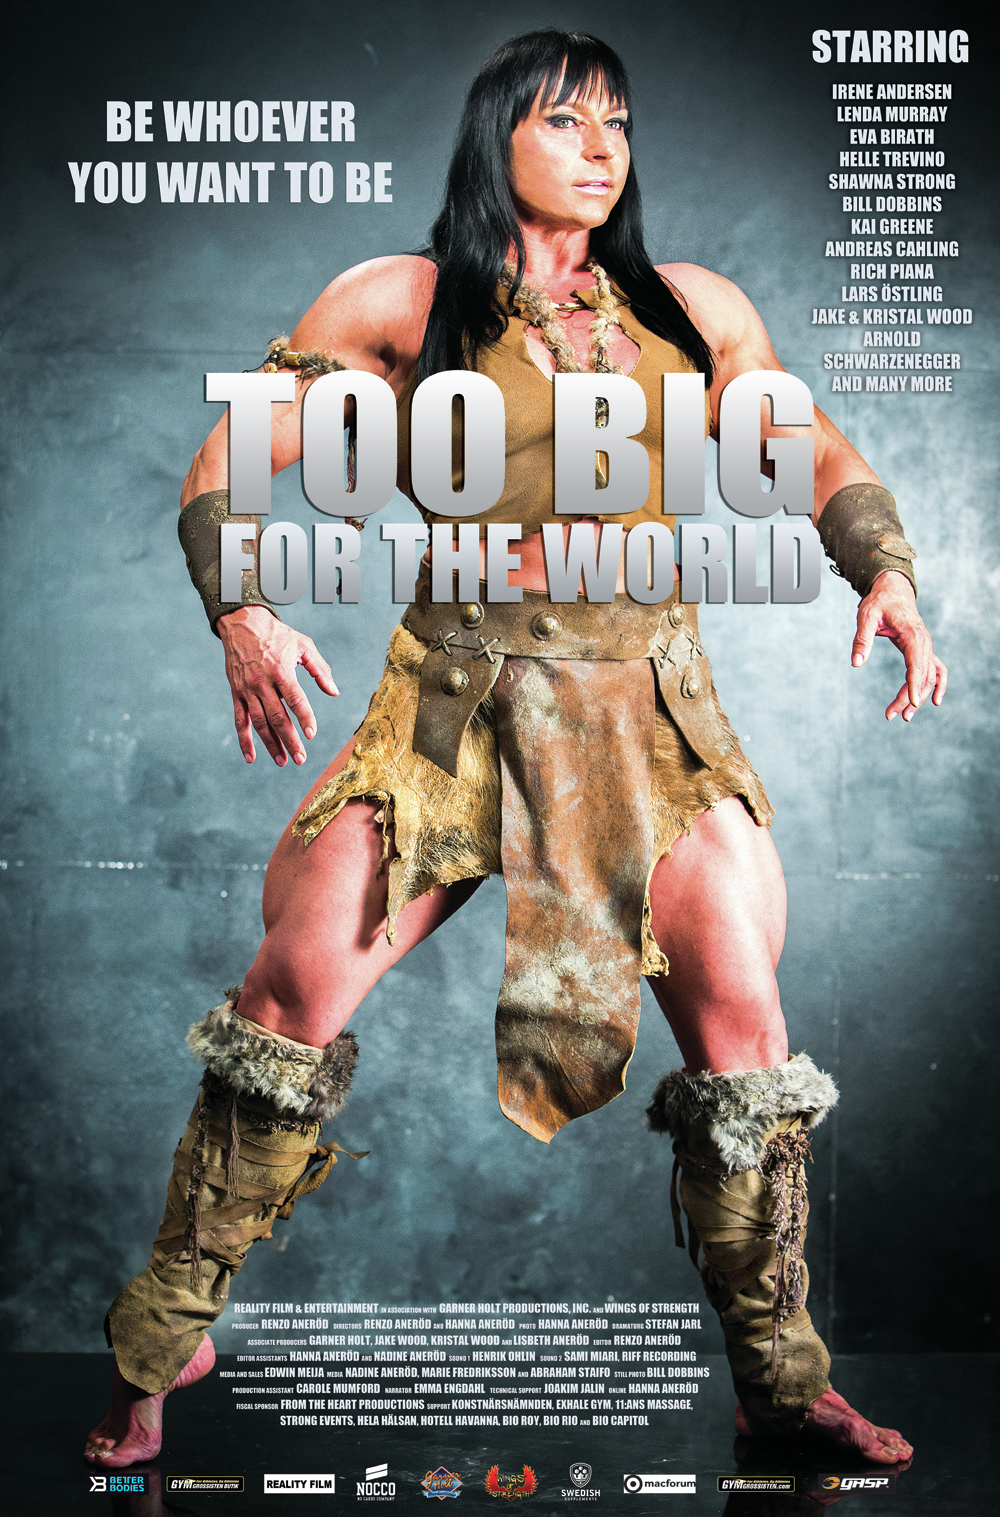 Too_big_for_the_world_poster_L_rgb1